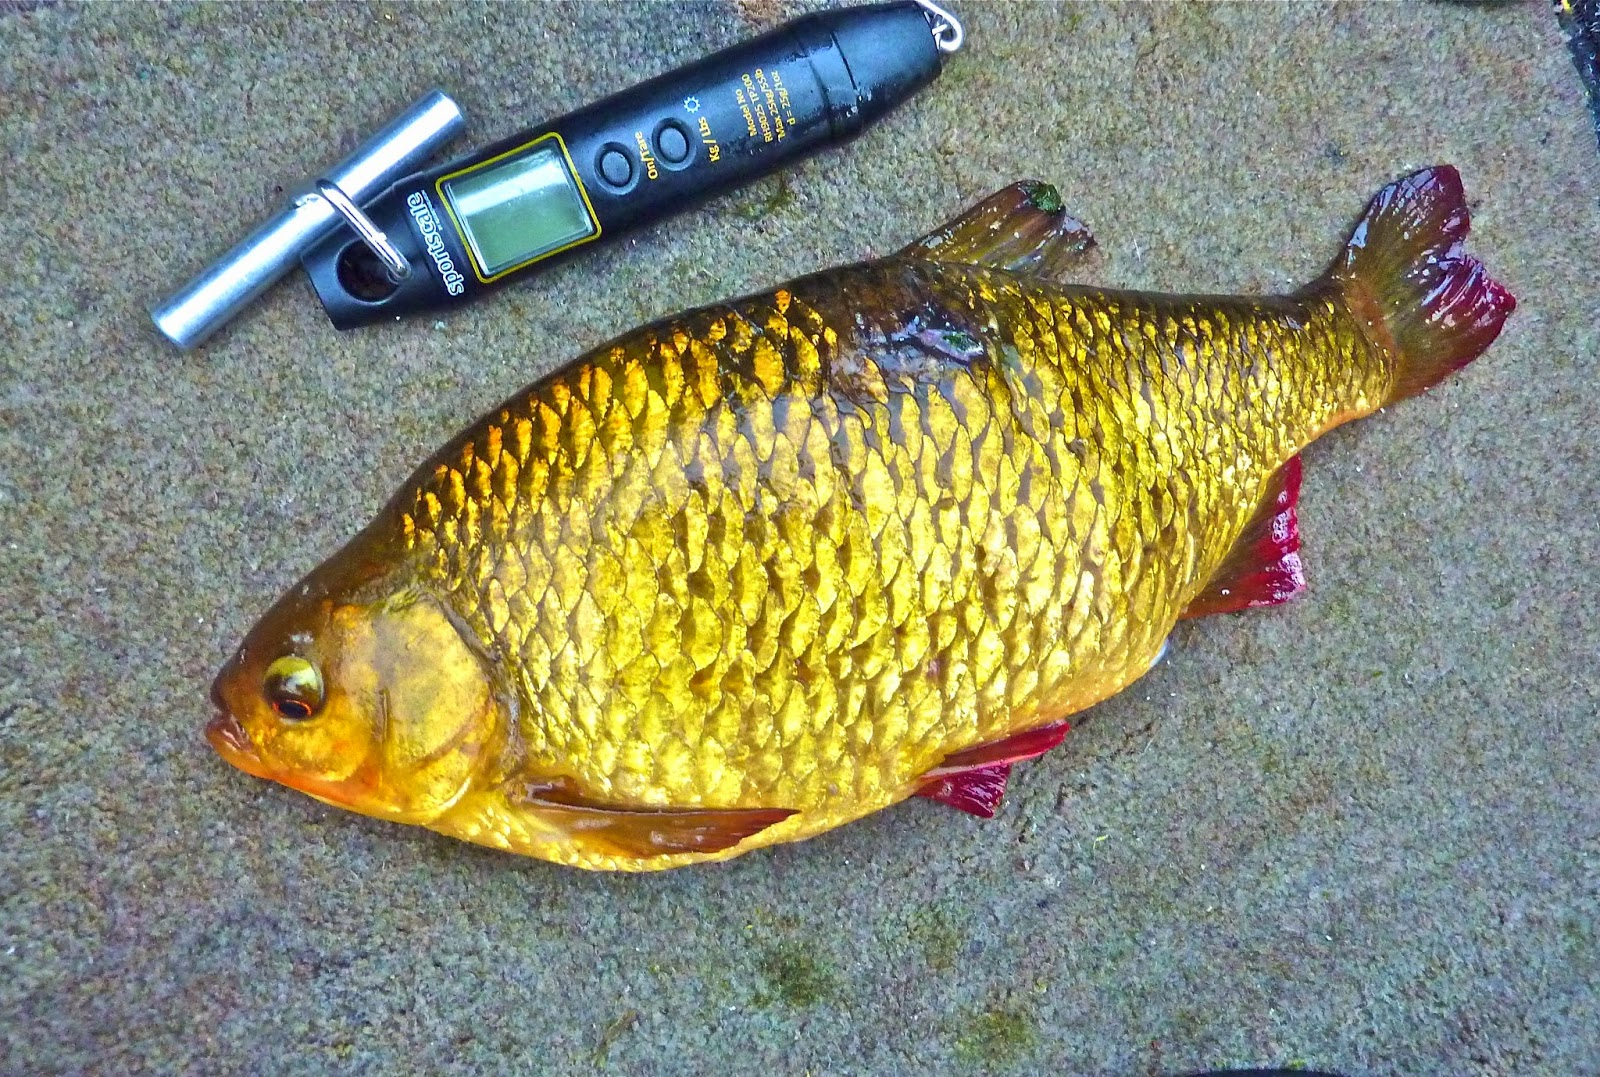 Hugh miles wildlife adventures a passion for angling for Do all fish have scales